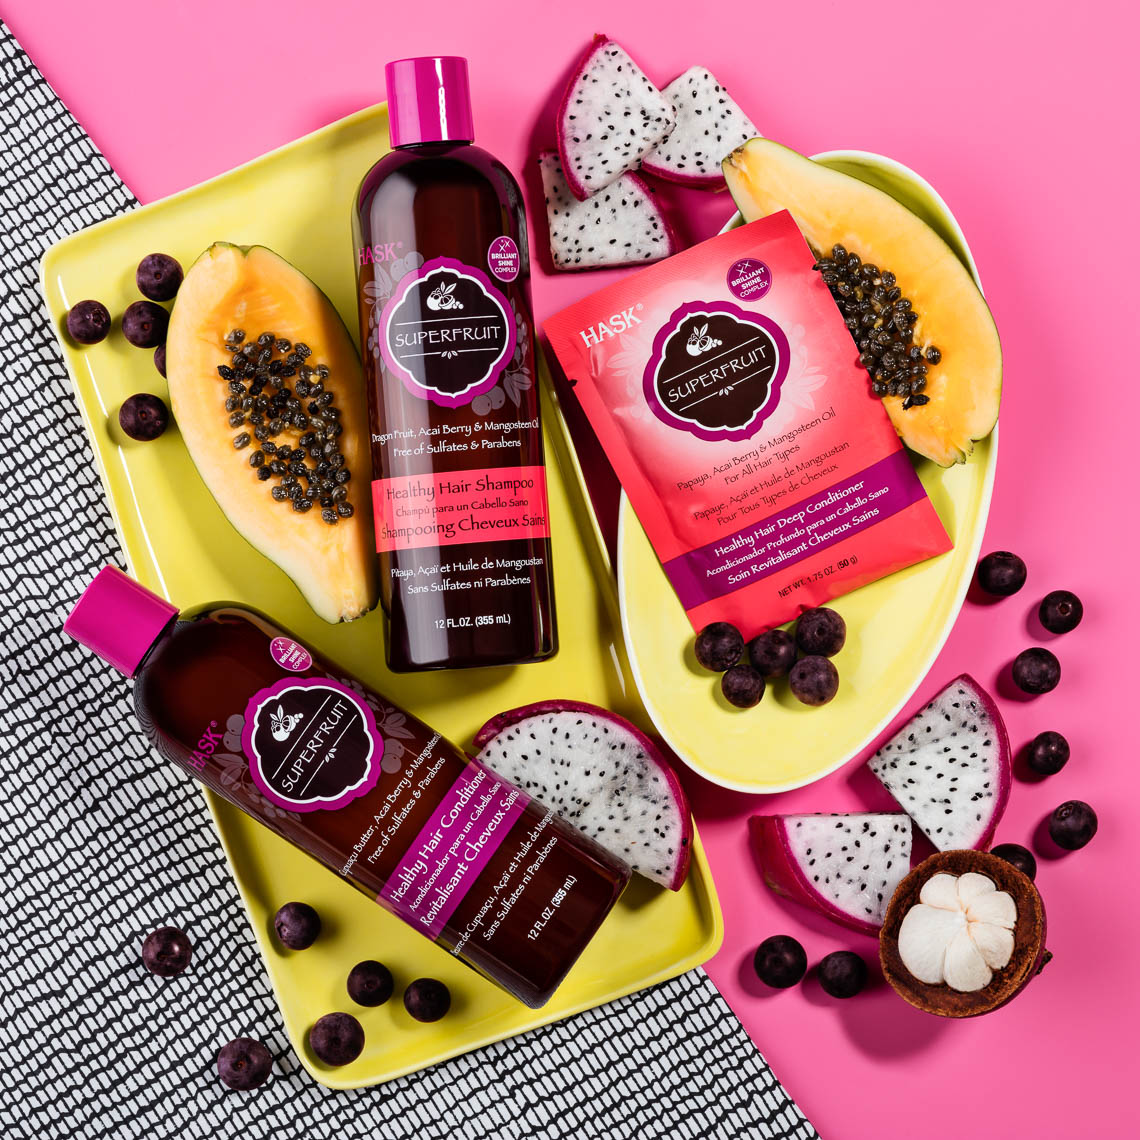 product photographer cosmetics photography superfruit haircare still life